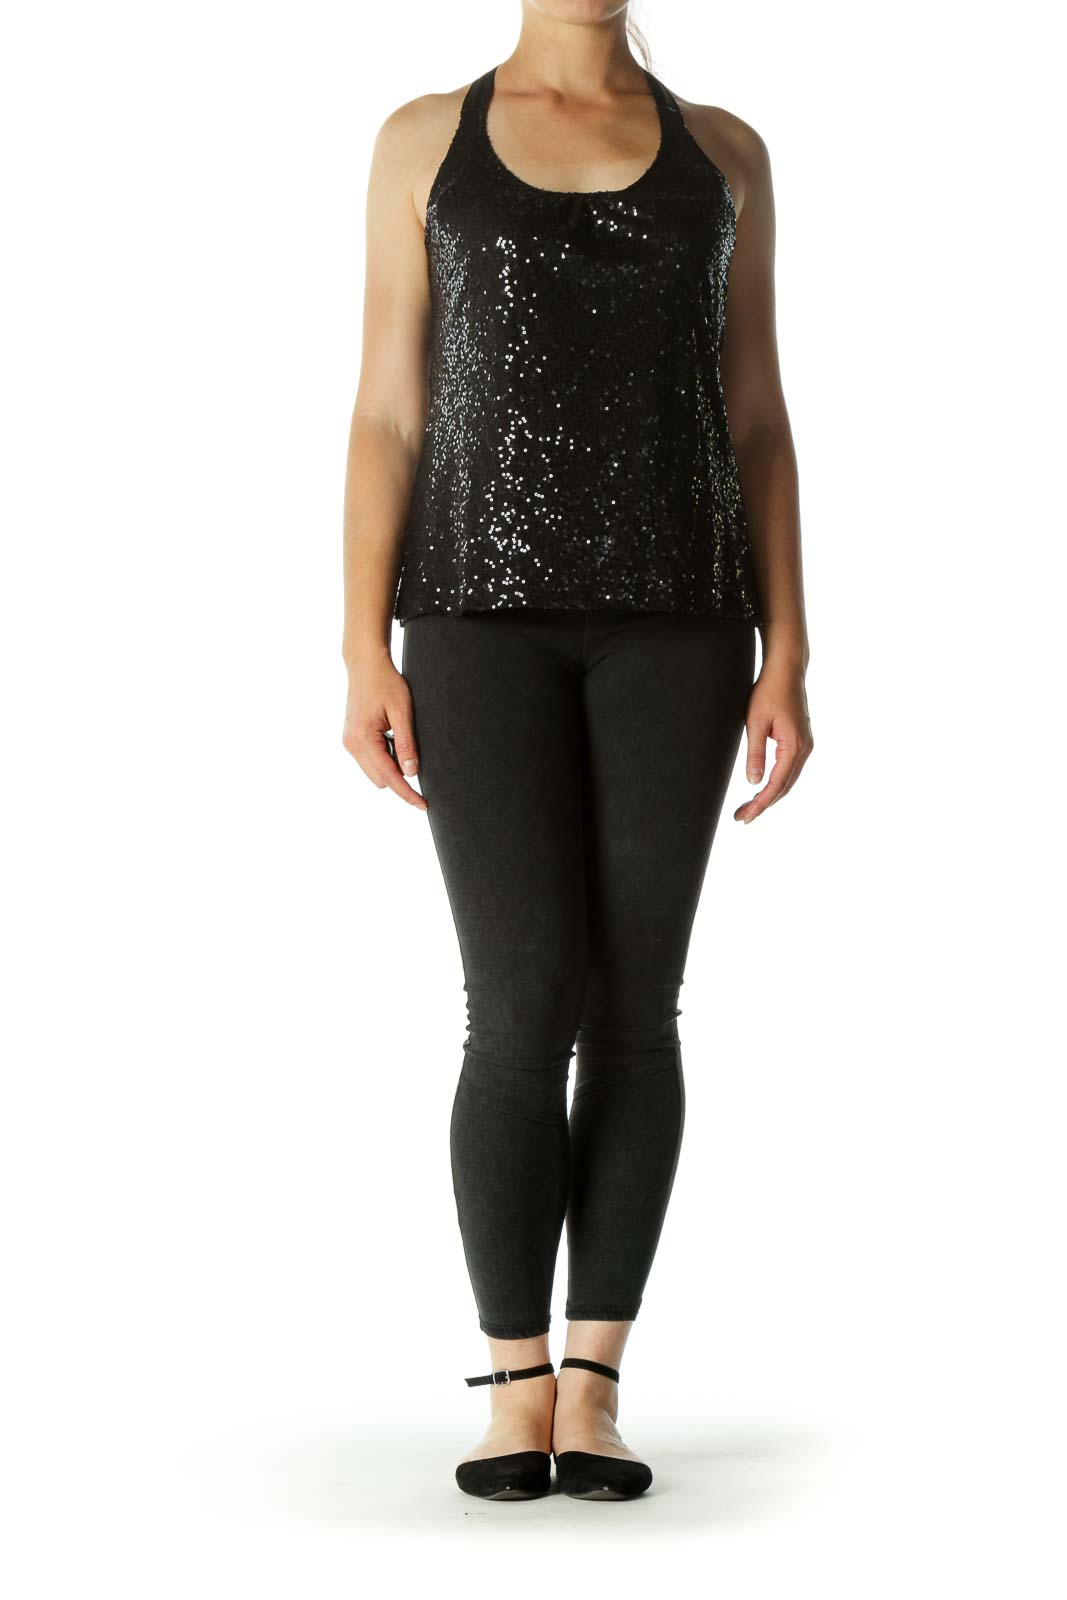 Black Sequined Thin Racerback Tank Tops